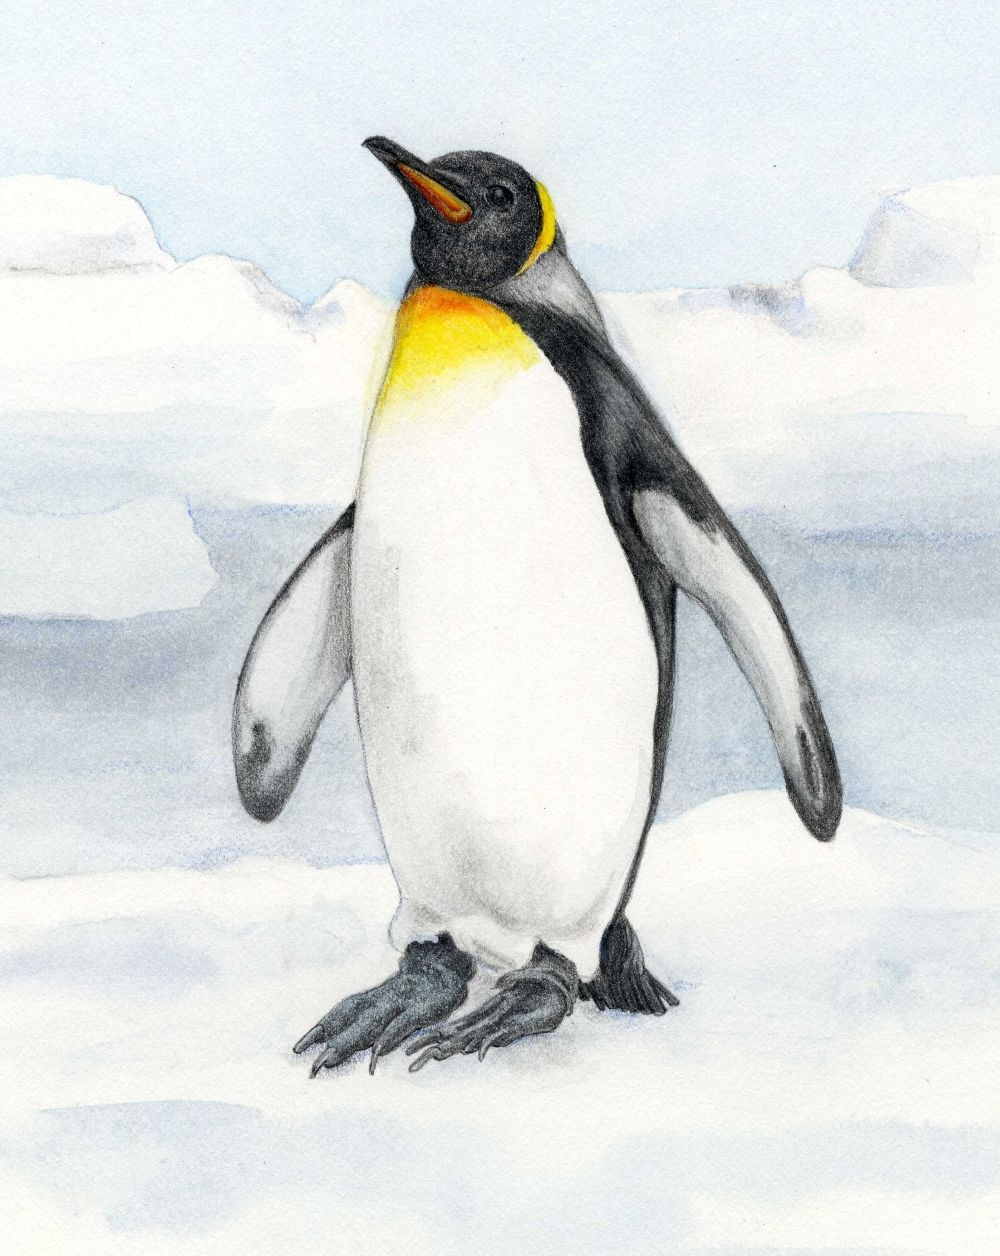 Black Bumble Bee >> Emperor Penguin - Animals At Risk from Climate Change